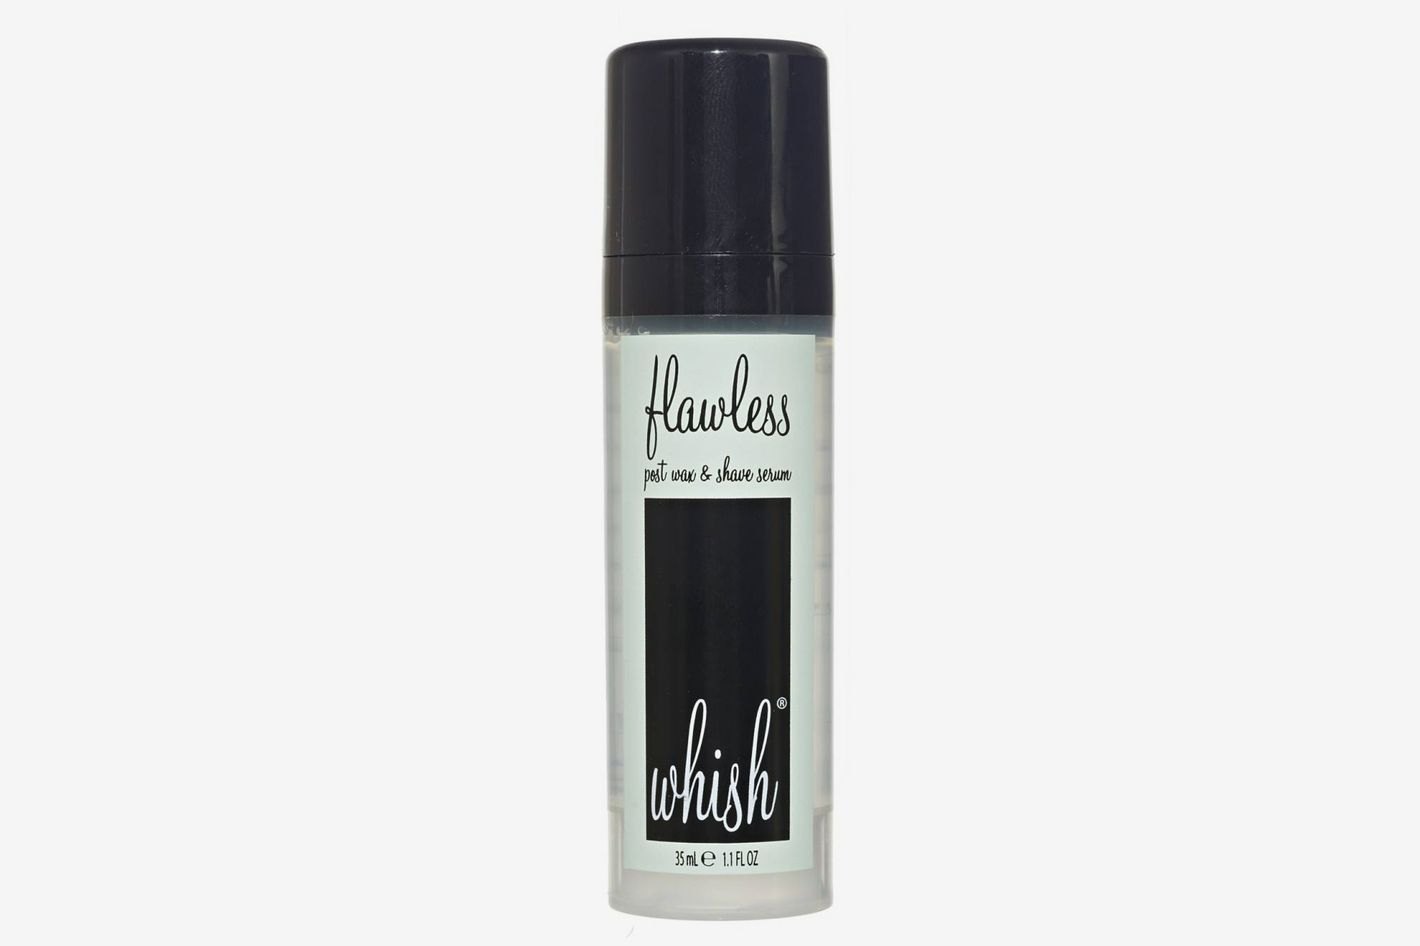 Whish Flawless Post-Wax & Shave Serum